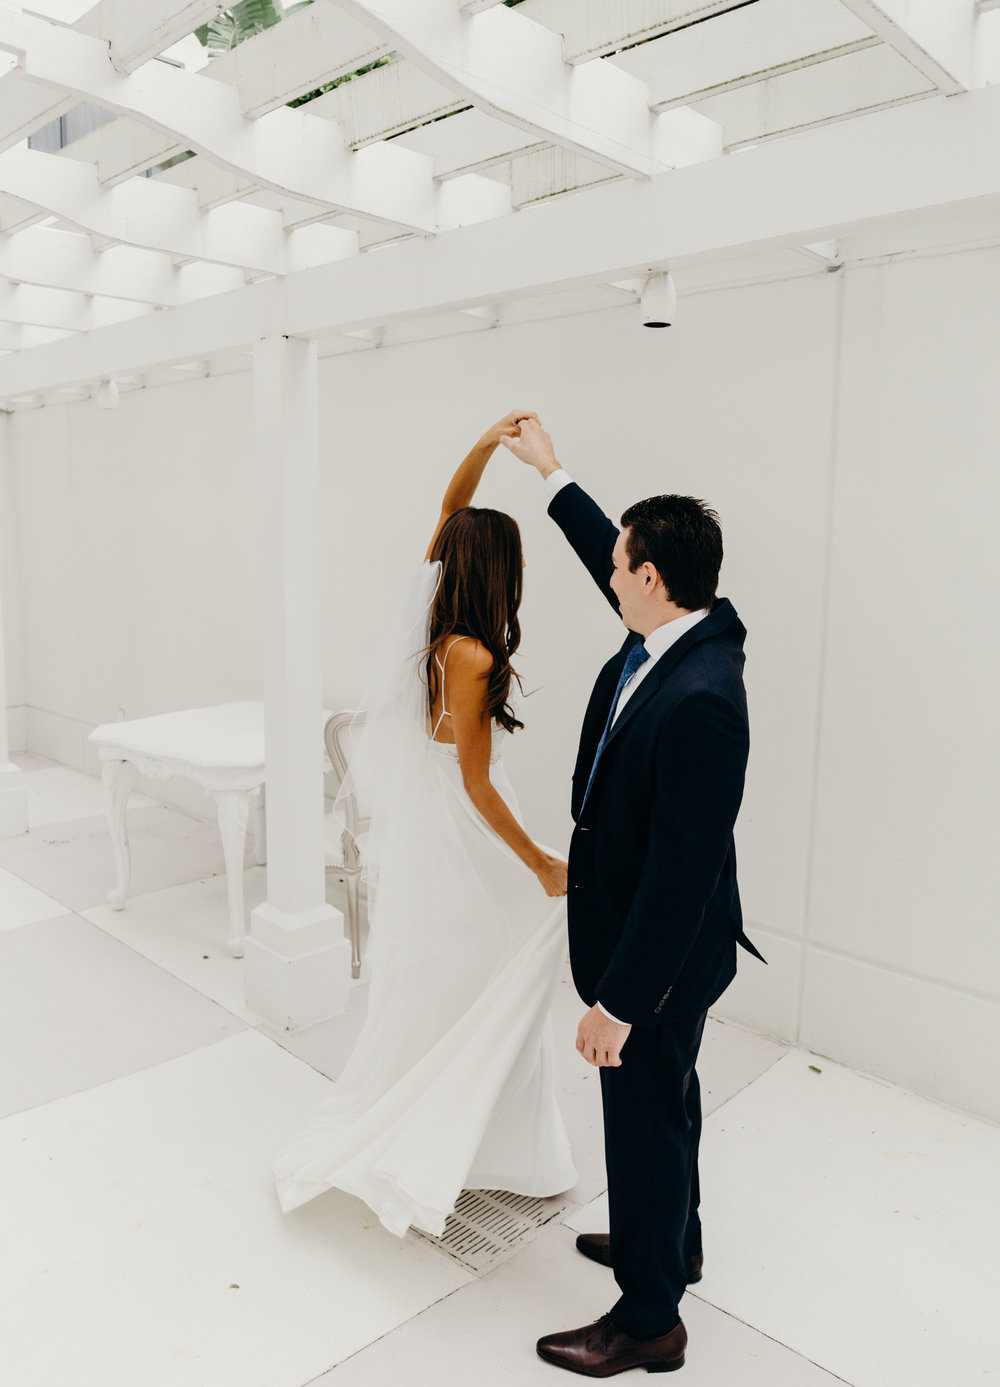 First Look | Nicholas and Jessica | Wedding | Downtown Orlando | Captured by Vanessa Boy |Vanessaboy.com (131 of 52).jpg